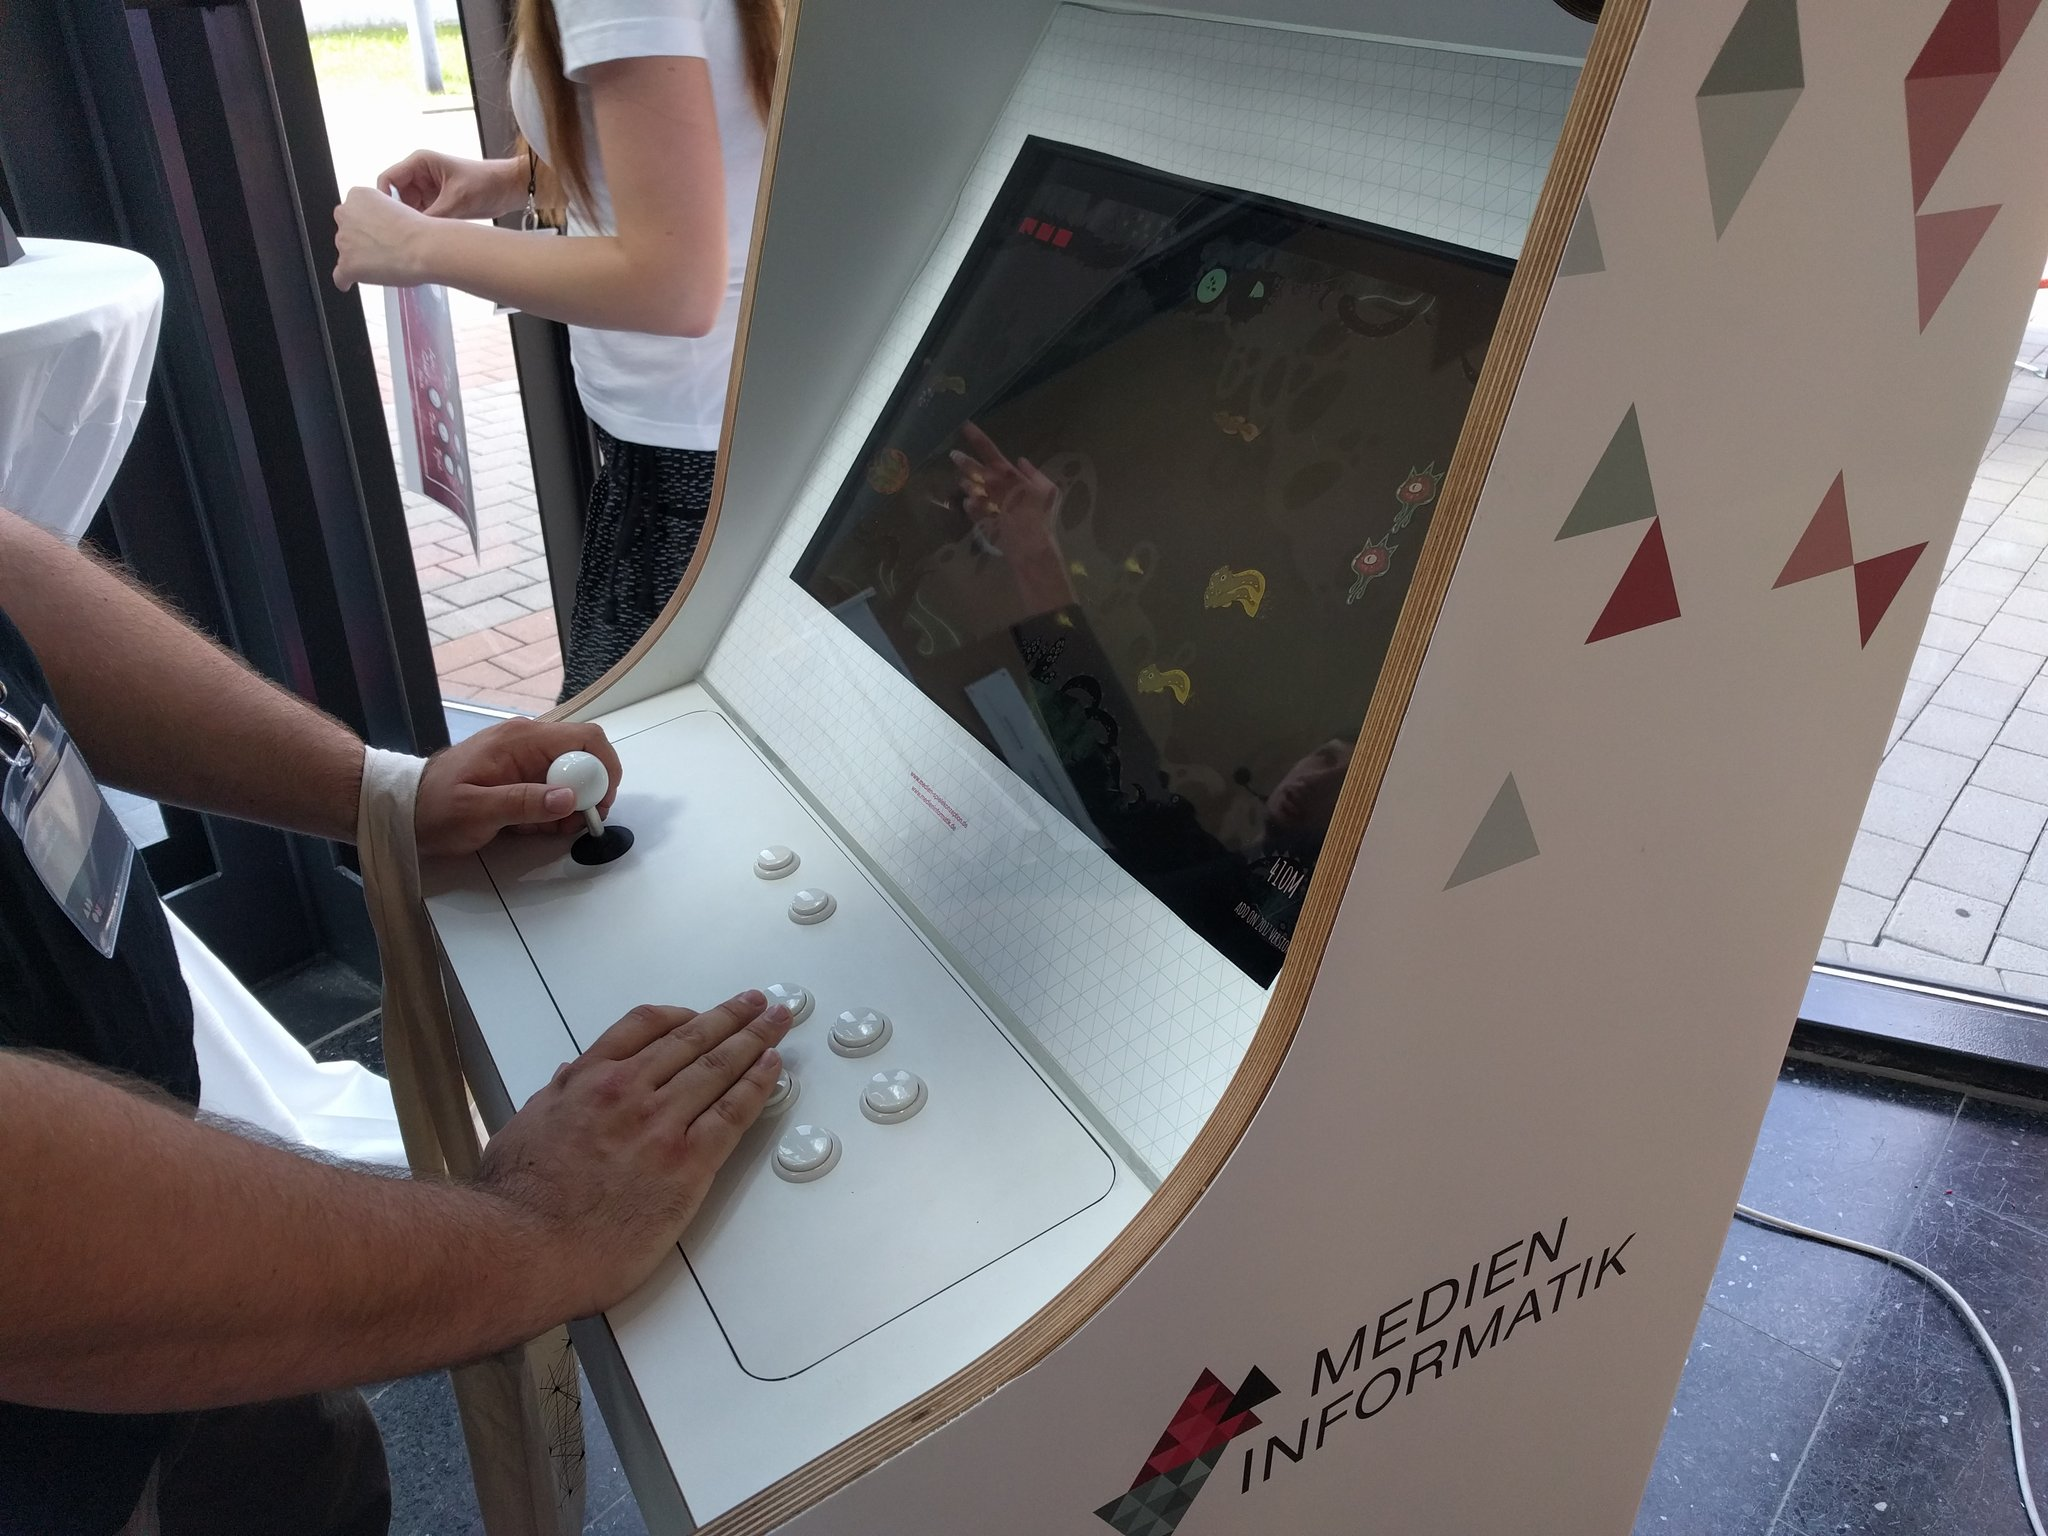 The #arcade machine at @ADD_ON_Conf is up and running! #UnknownOcean #gamedev #indiegame https://t.co/GyyRaBmKva